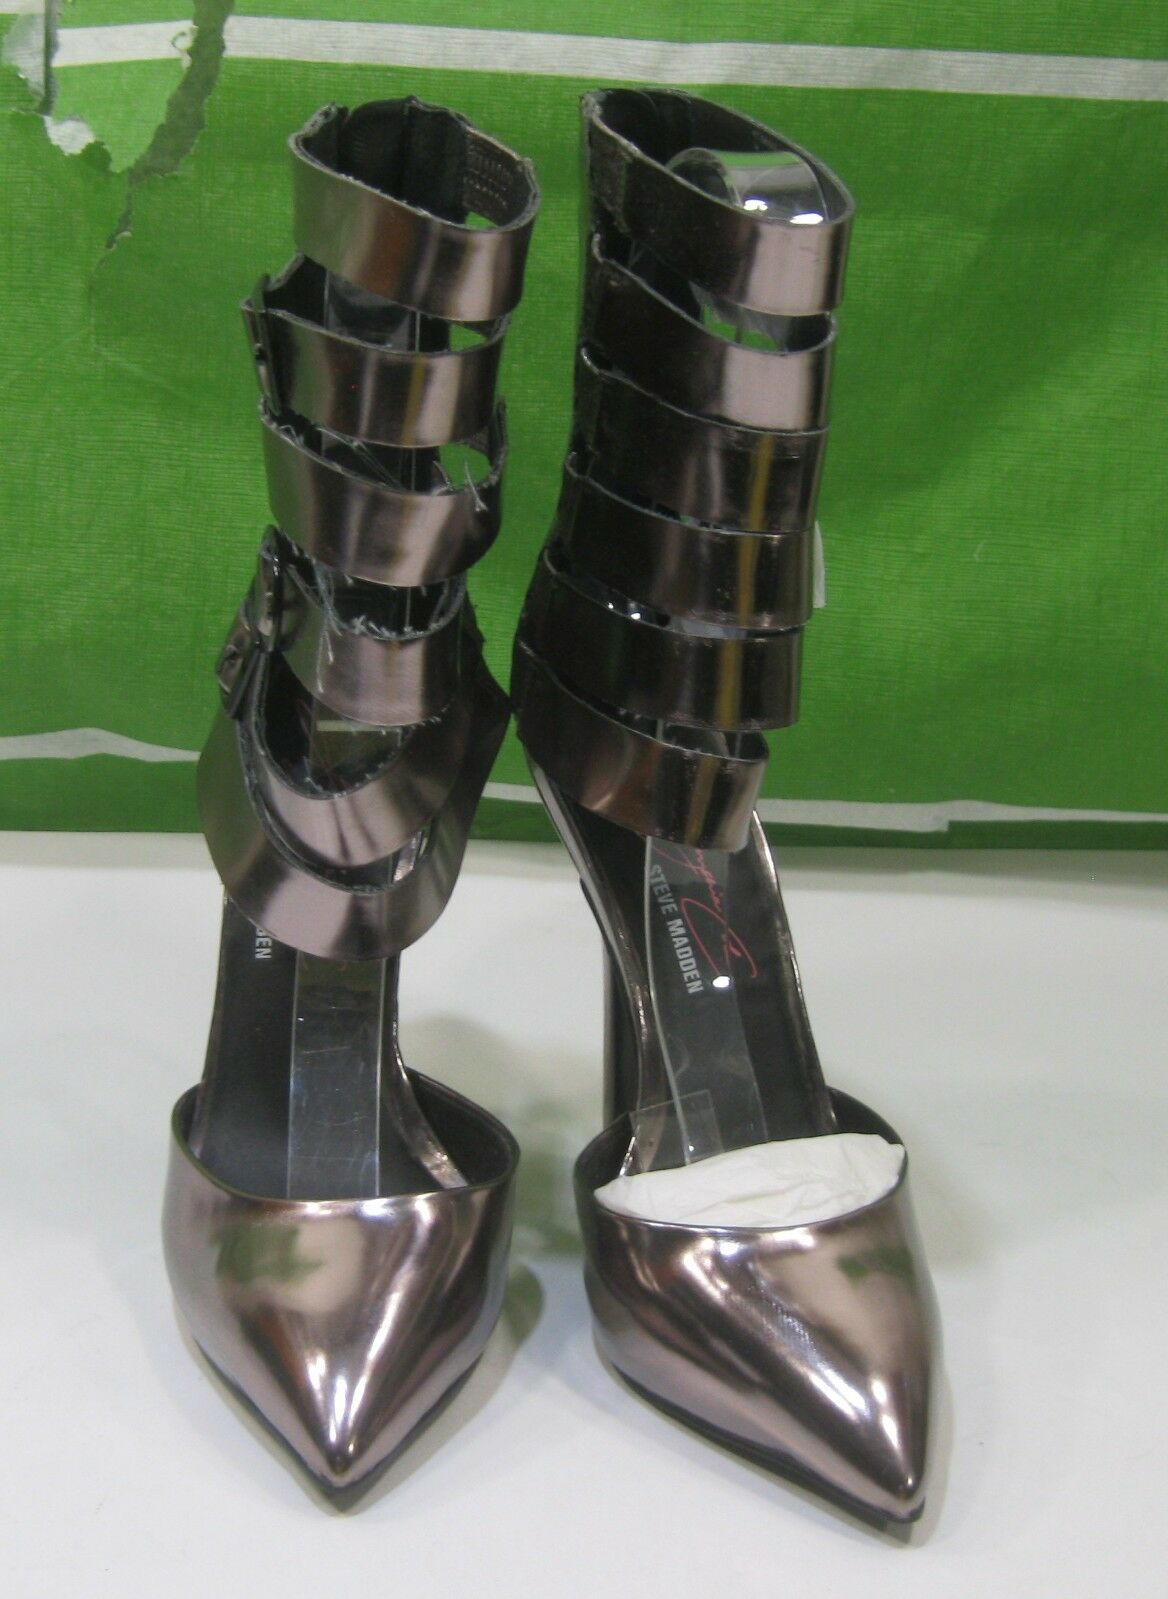 New Steve Madden Bsteel 5 High High High Heel Pointy Toe Ankle Straps Sexy shoes Size 7 da2269